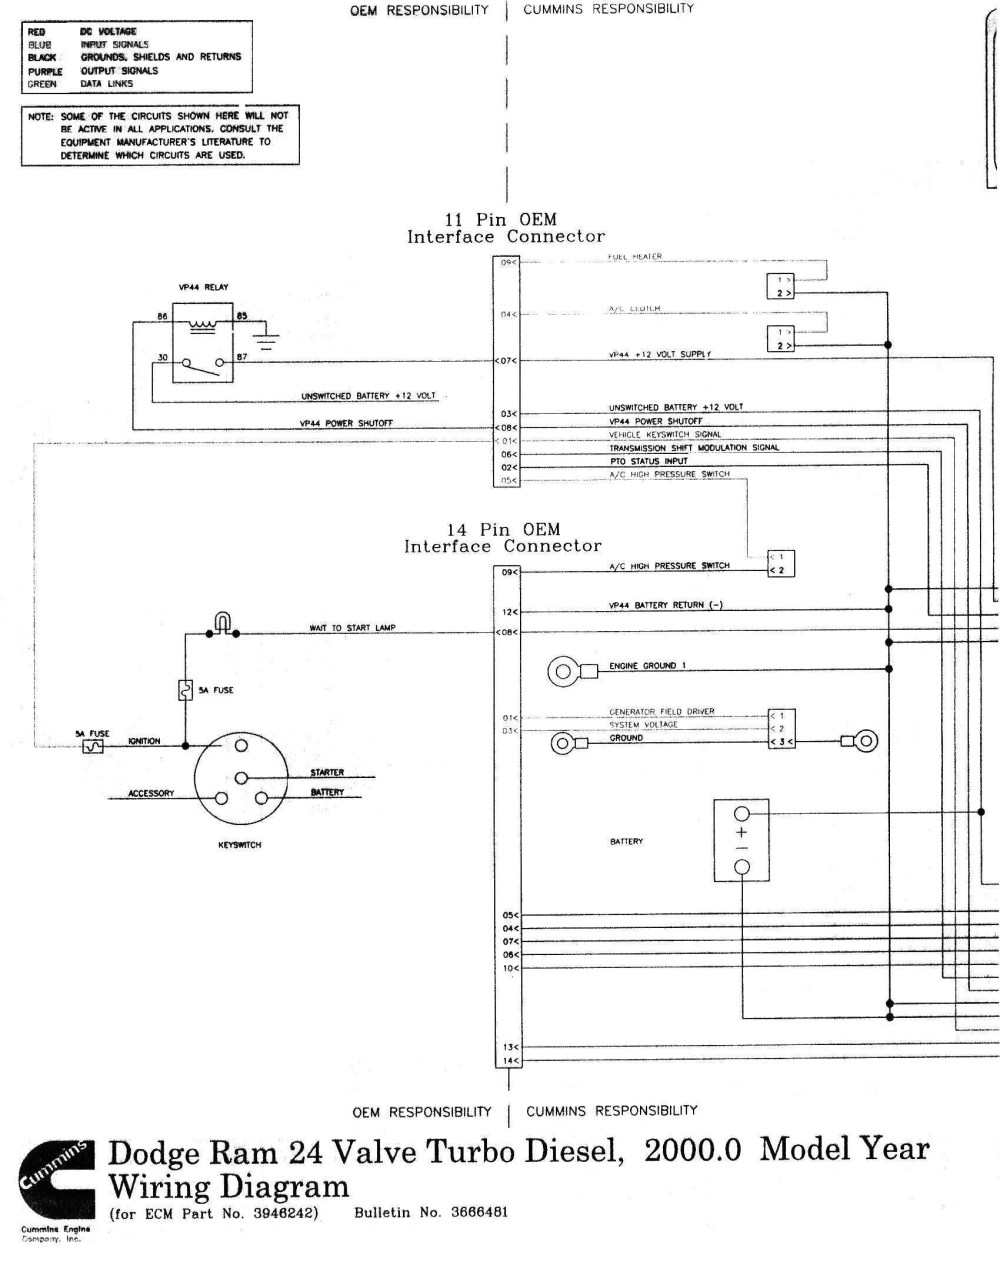 medium resolution of 1999 dodge cummins ecm wiring diagram 2008 dodge ram 1500 ignition wiring diagram fresh rb25det